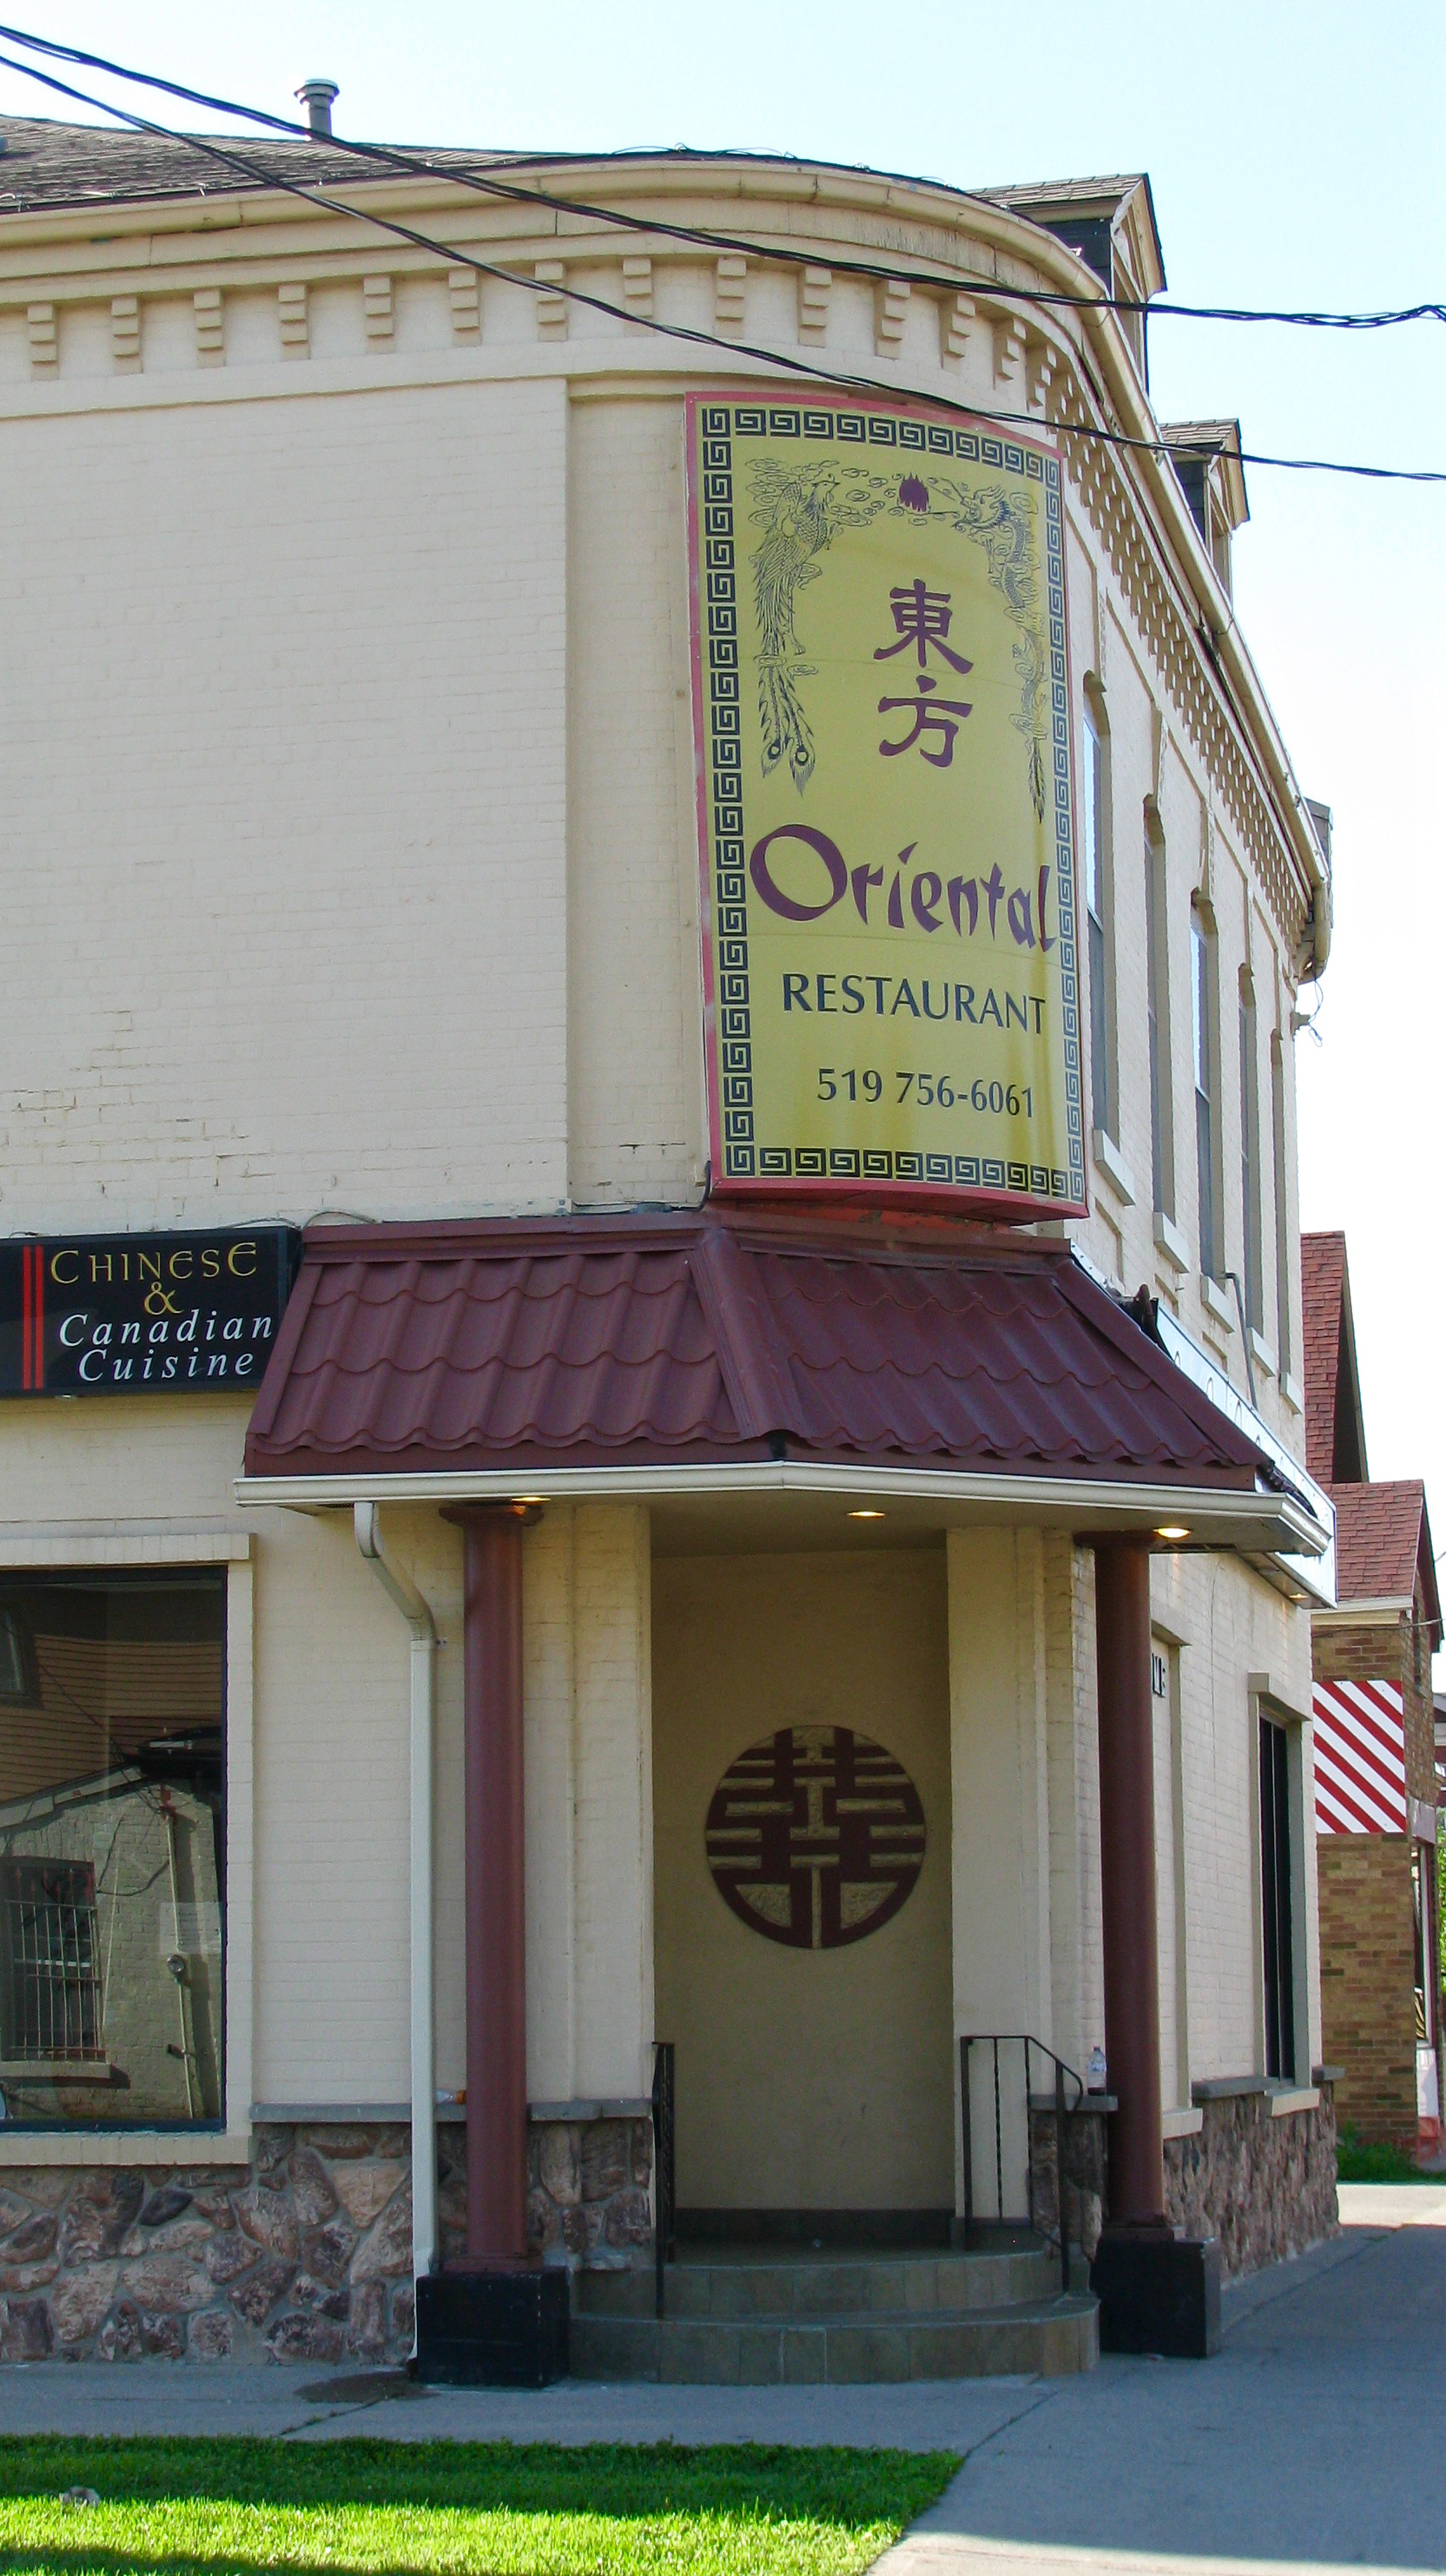 The Oriental, located at 164 Market St., has been a reliable dining establishment since 1961 (Brittany Bennett/ The Sputnik).